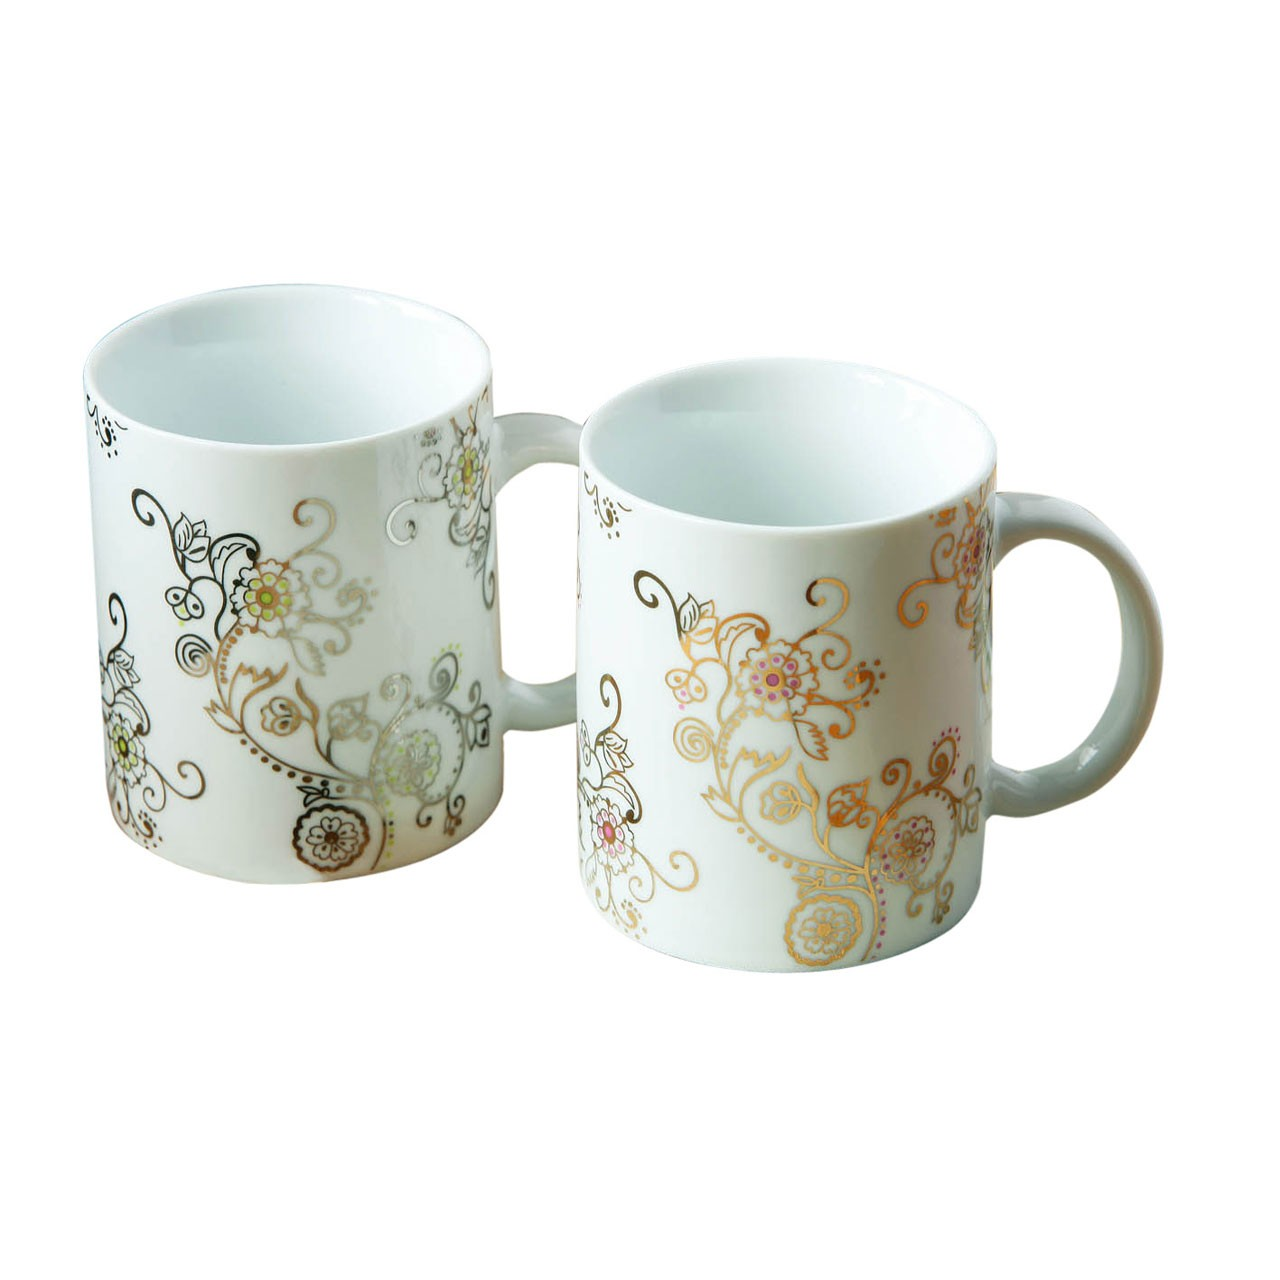 2 Assorted Porcelain Mug